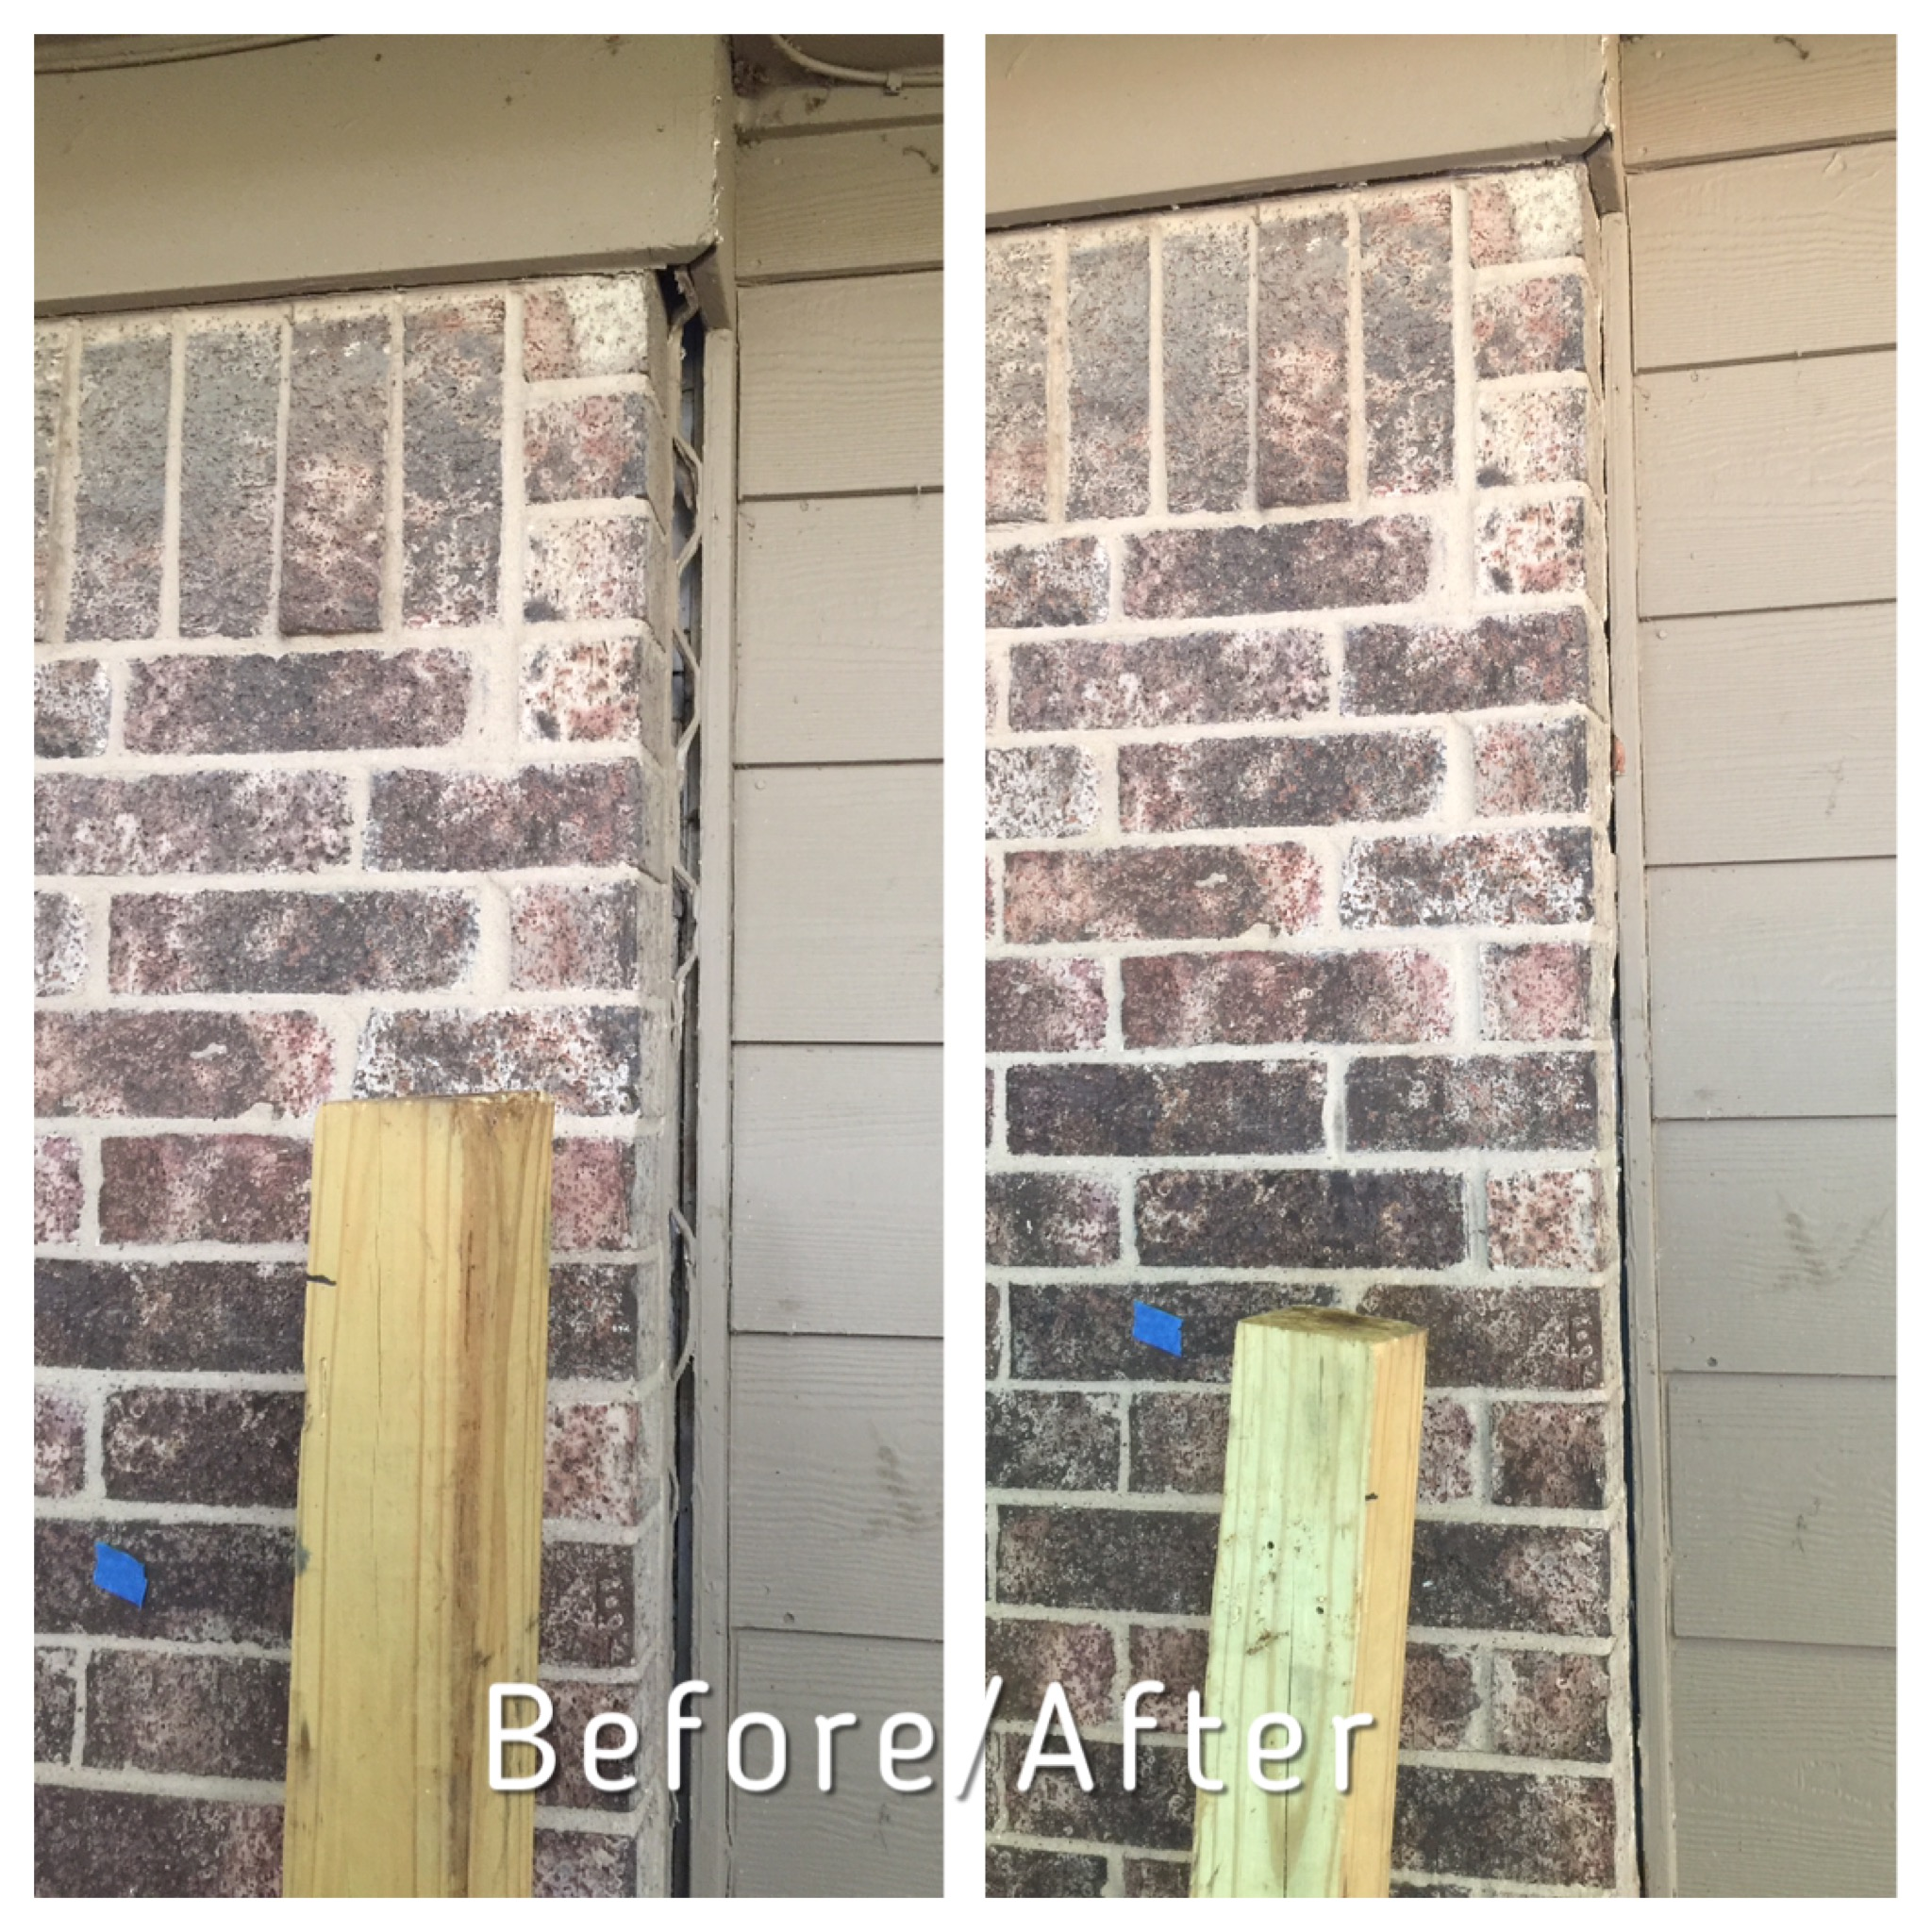 Before and after foundation repair